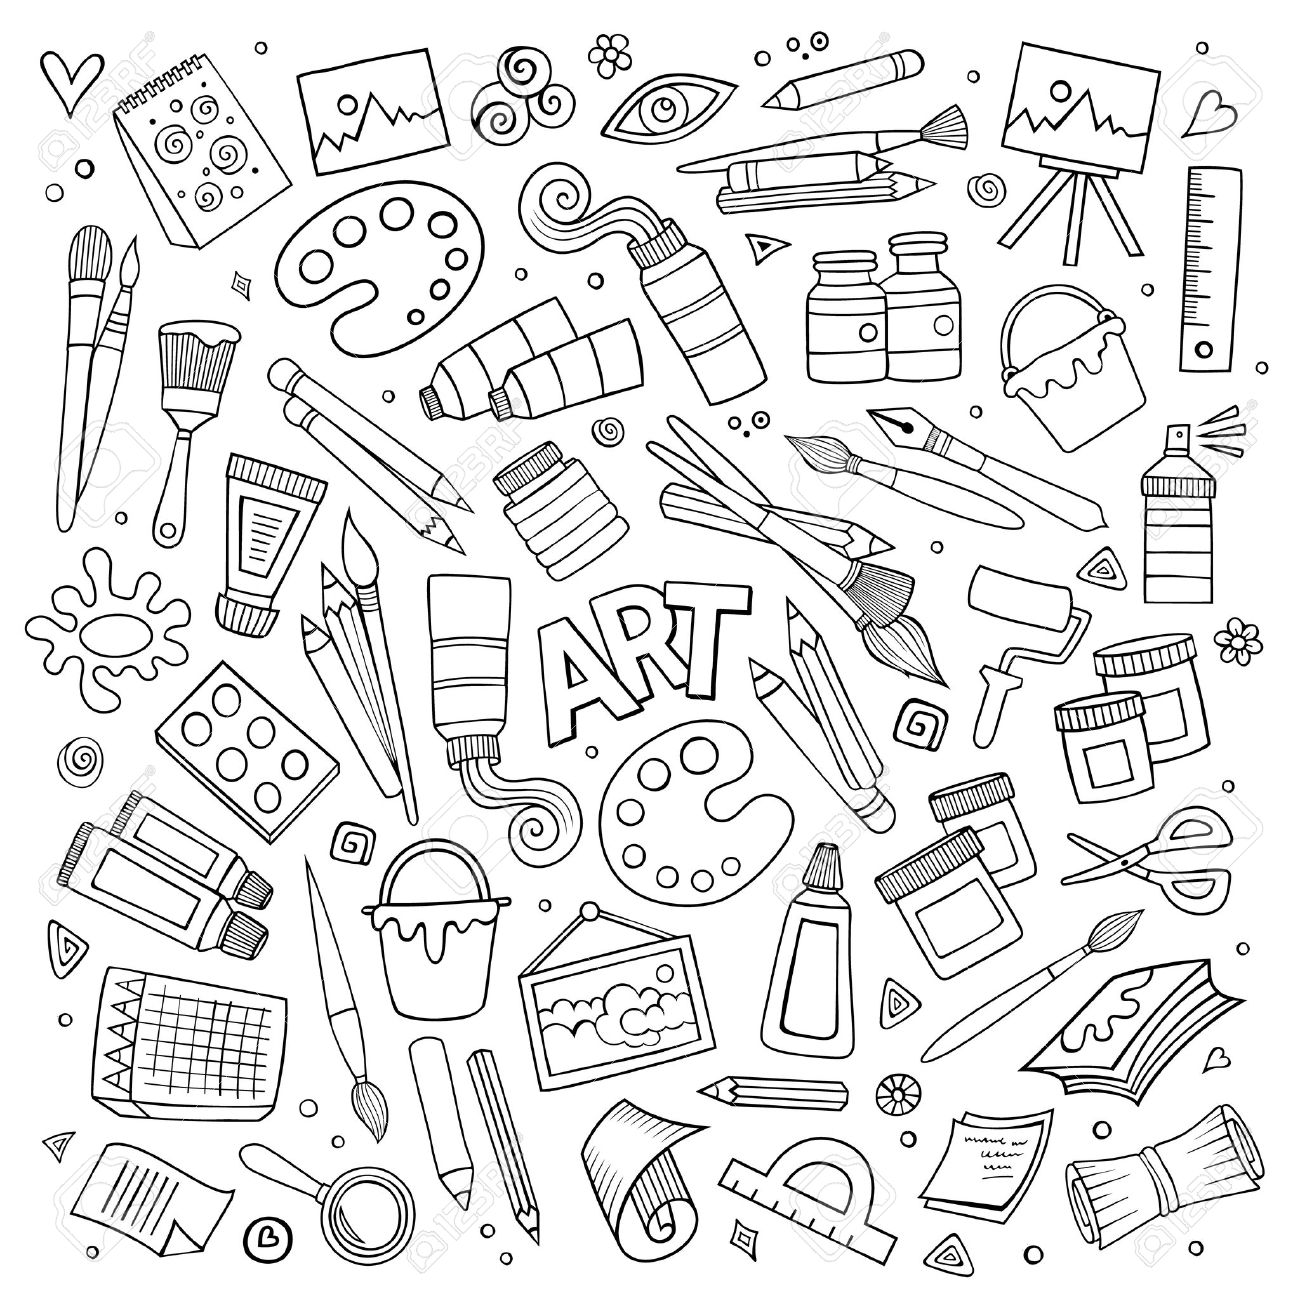 873,315 Doodle Art Stock Illustrations, Cliparts And Royalty Free ...